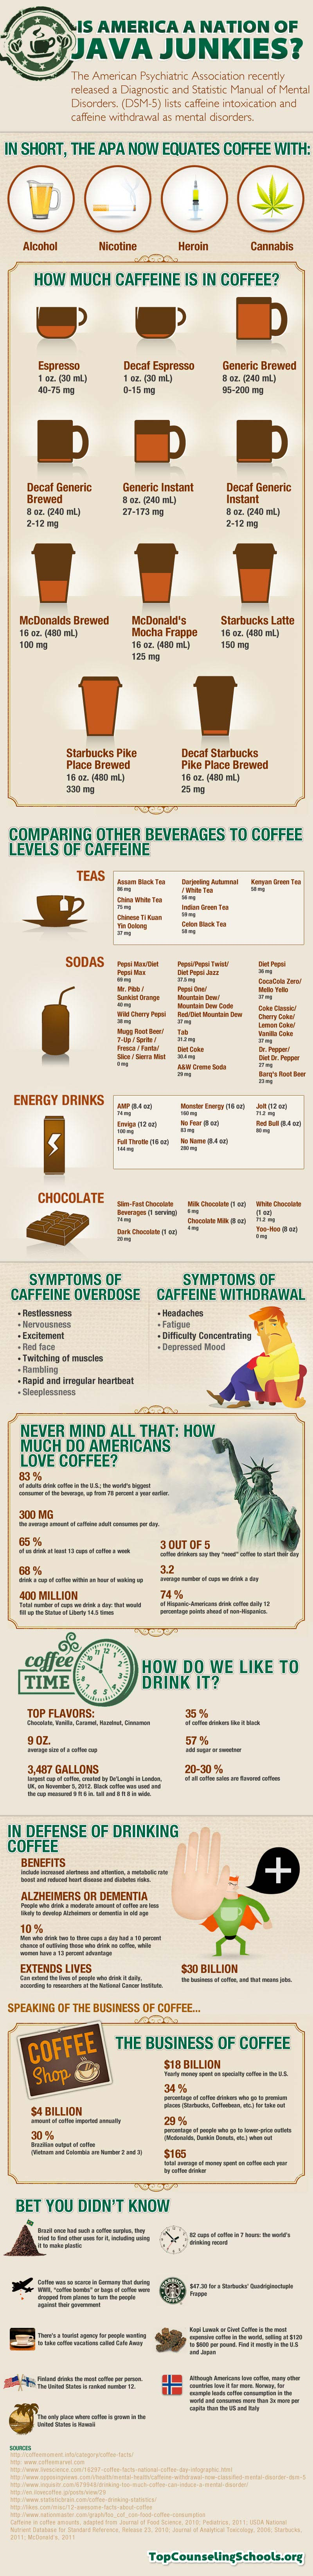 Is-America-A-Nation-Of-Java-Junkies-Infographic-infographicsmania.jpg